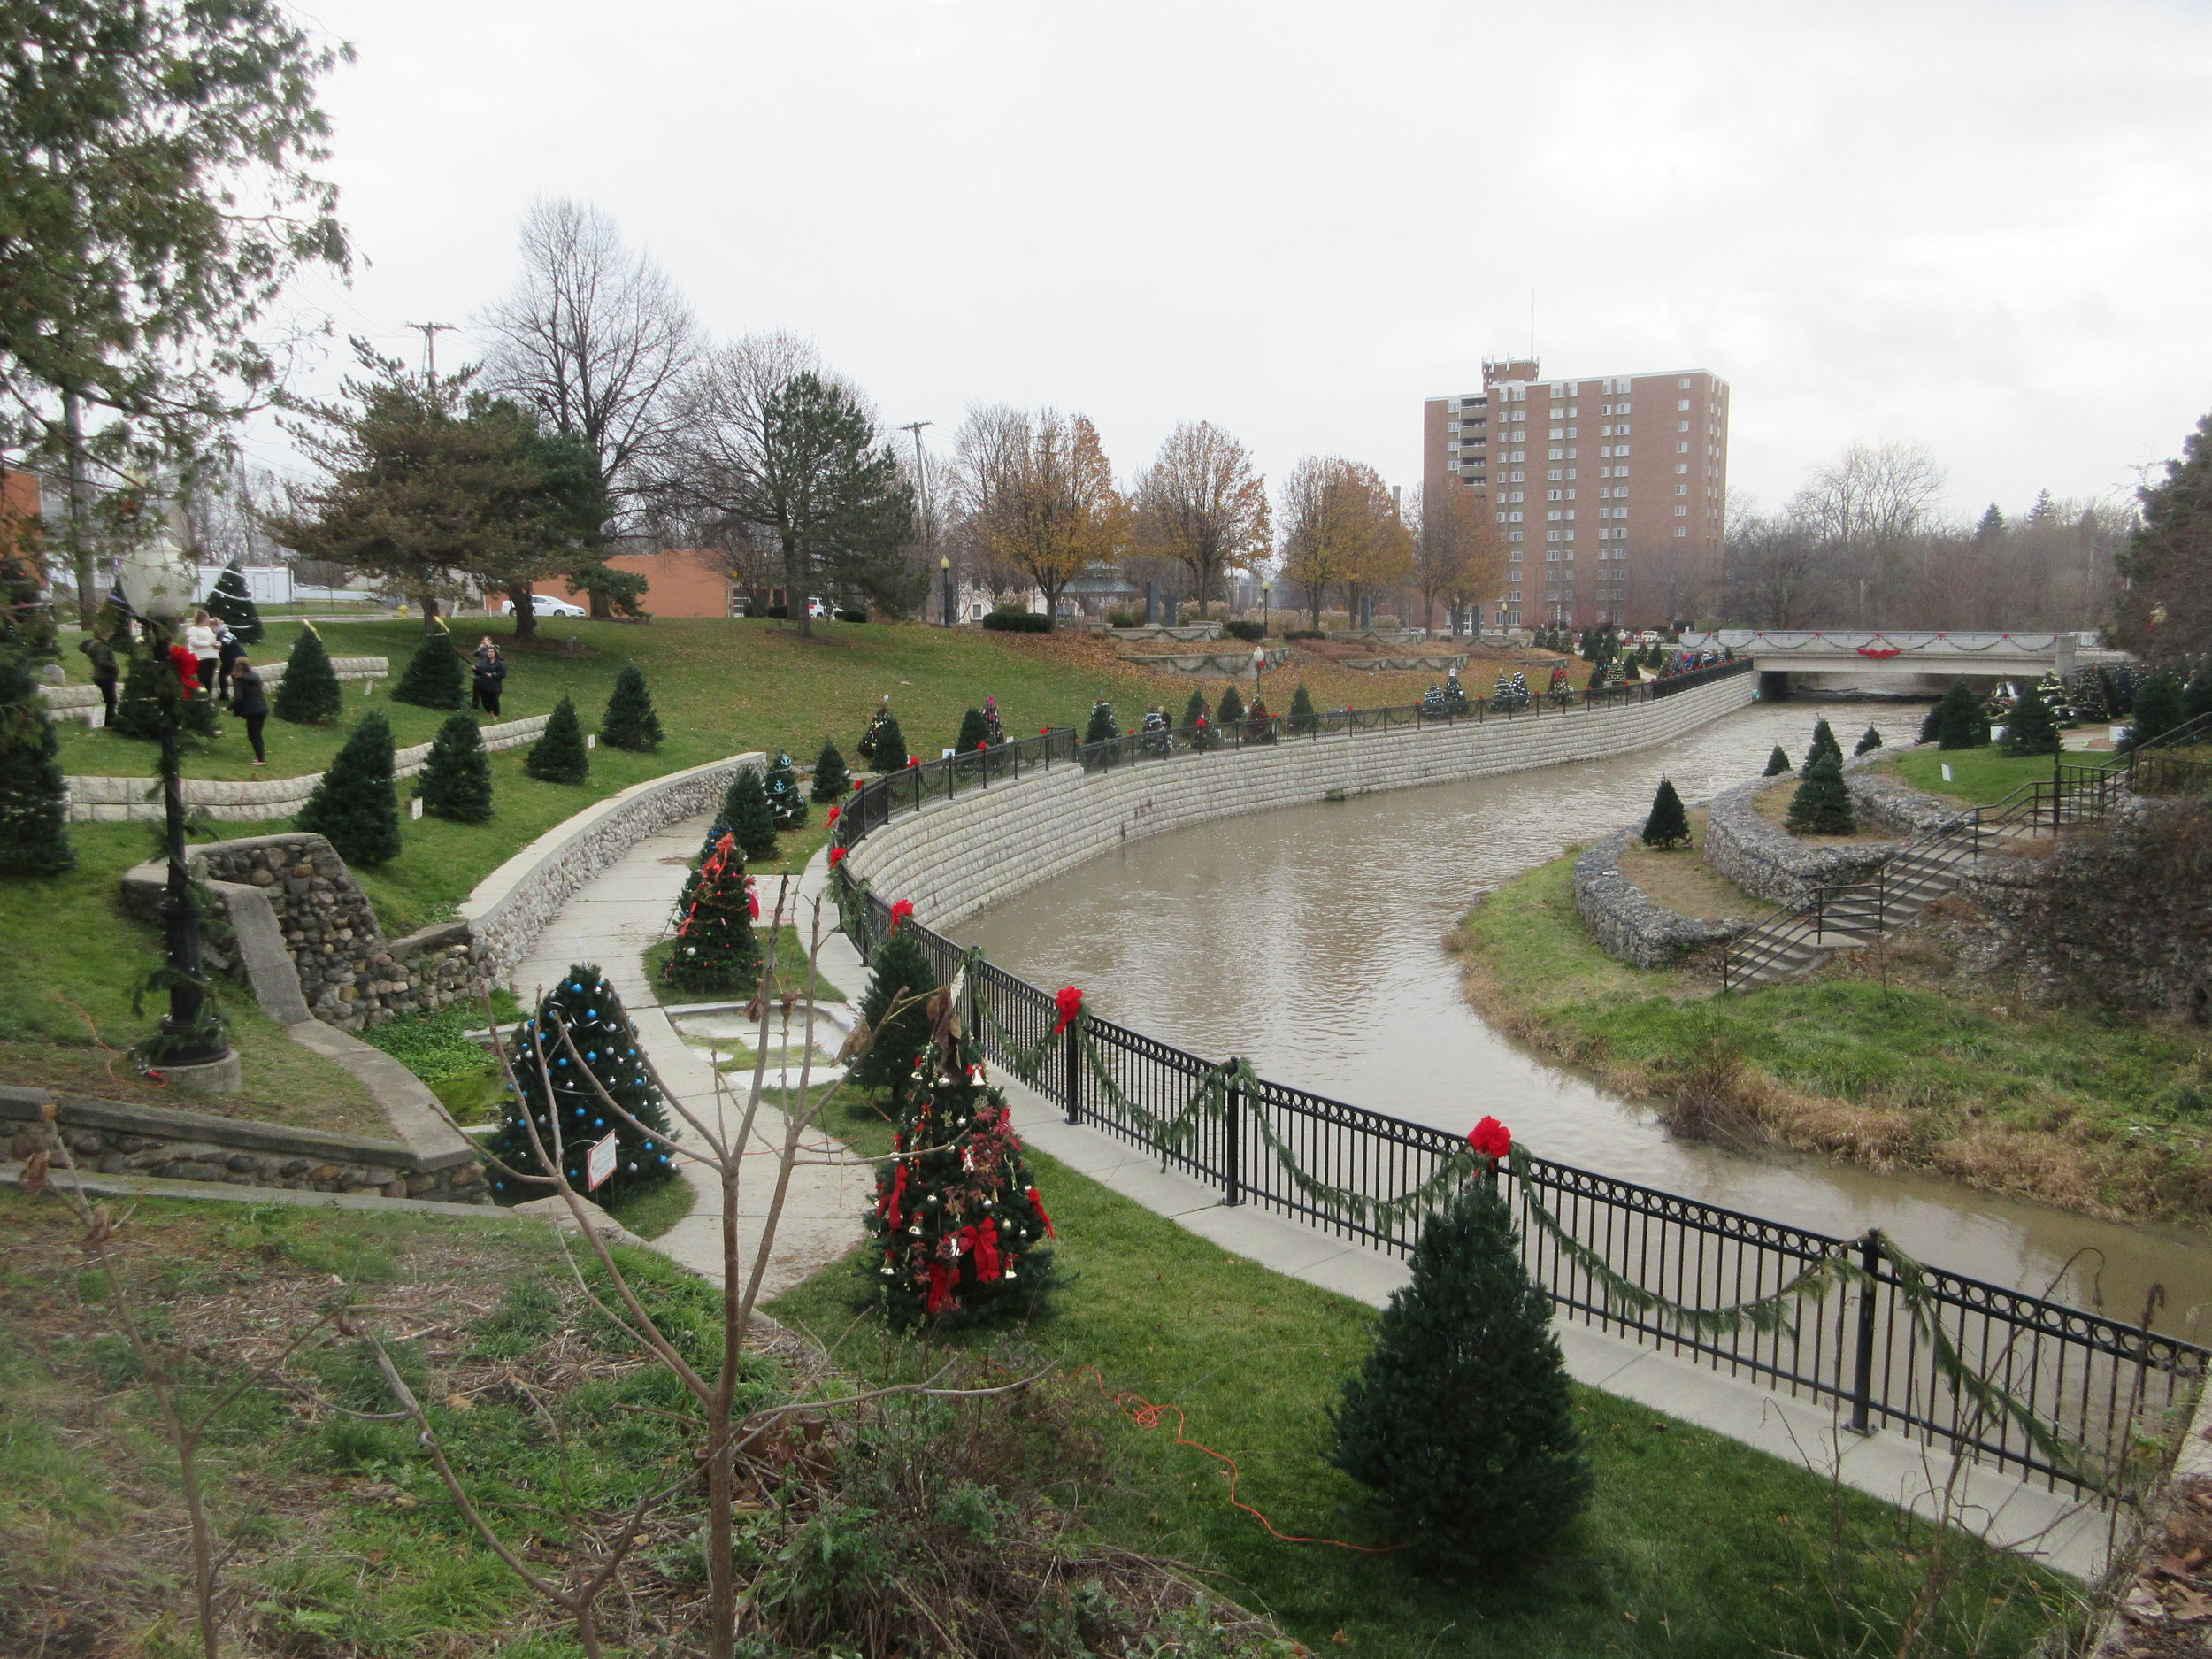 The local river walk in Adrian decorated with Christmas trees from the Civitan Tree Project.